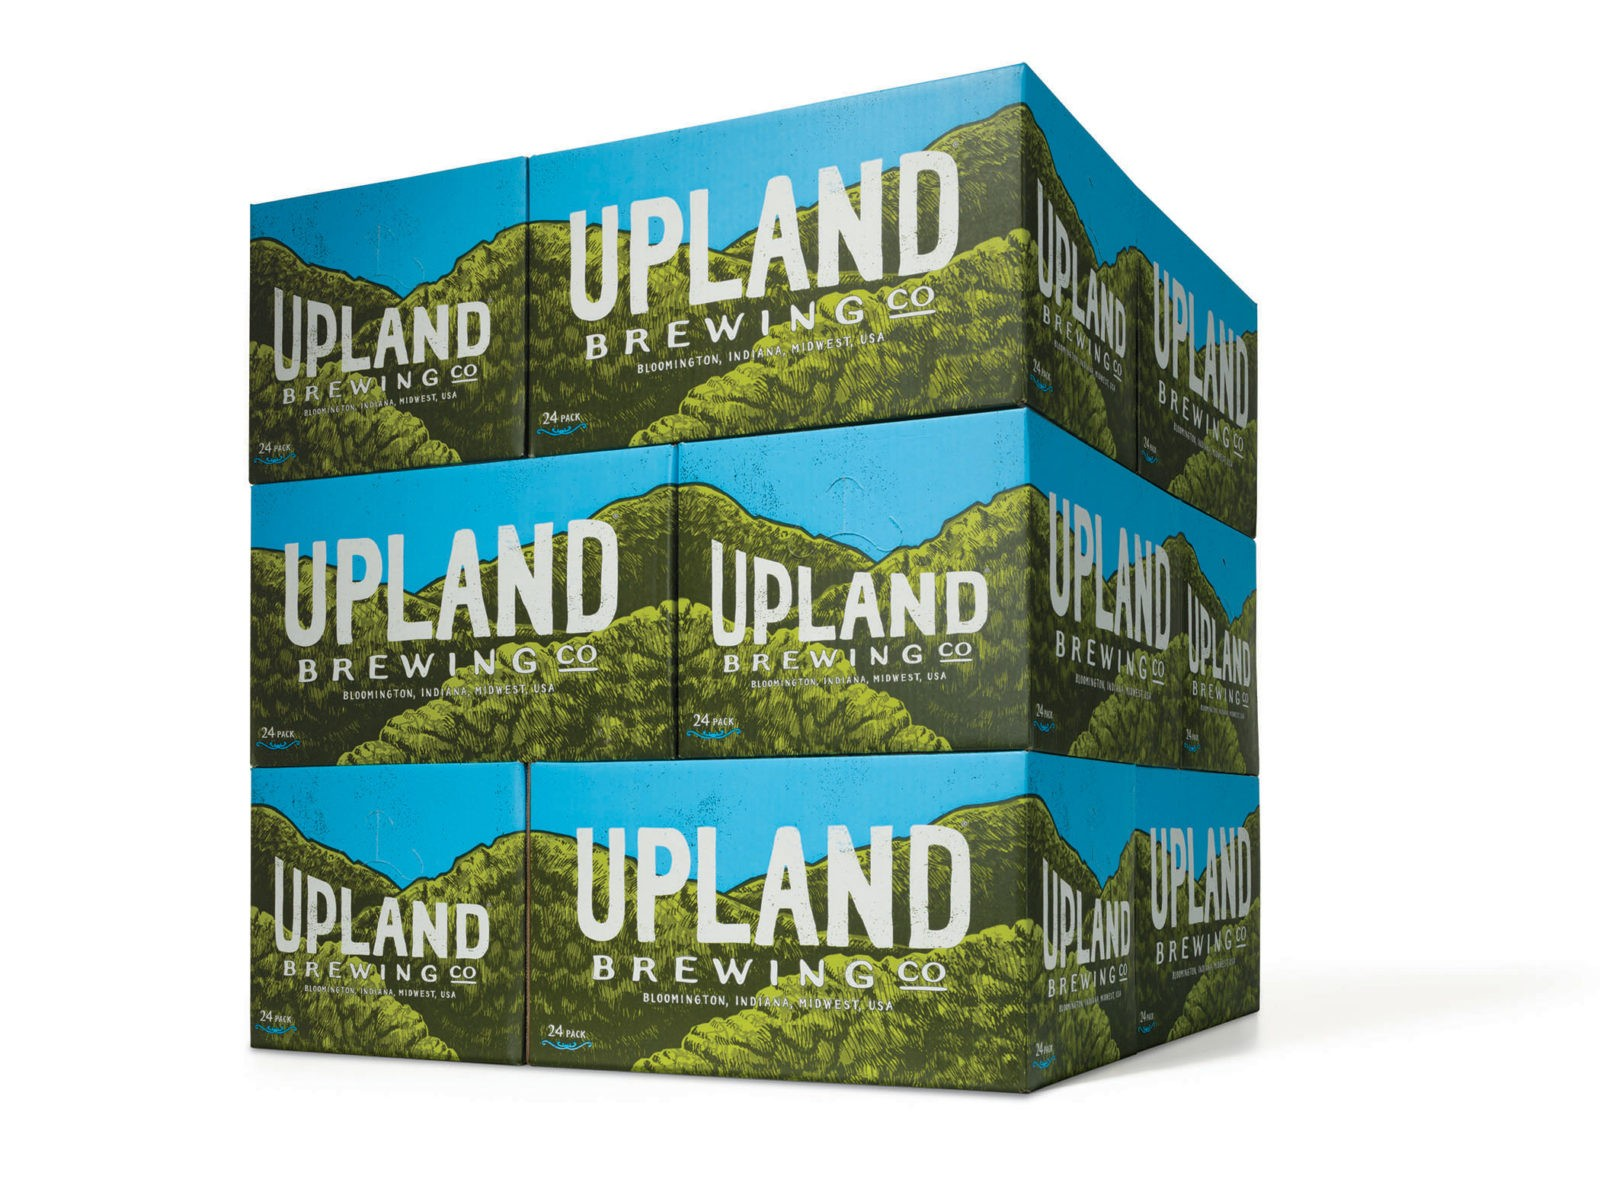 and the times they are a-changin' - page 32 of 40 - upland brewing co.